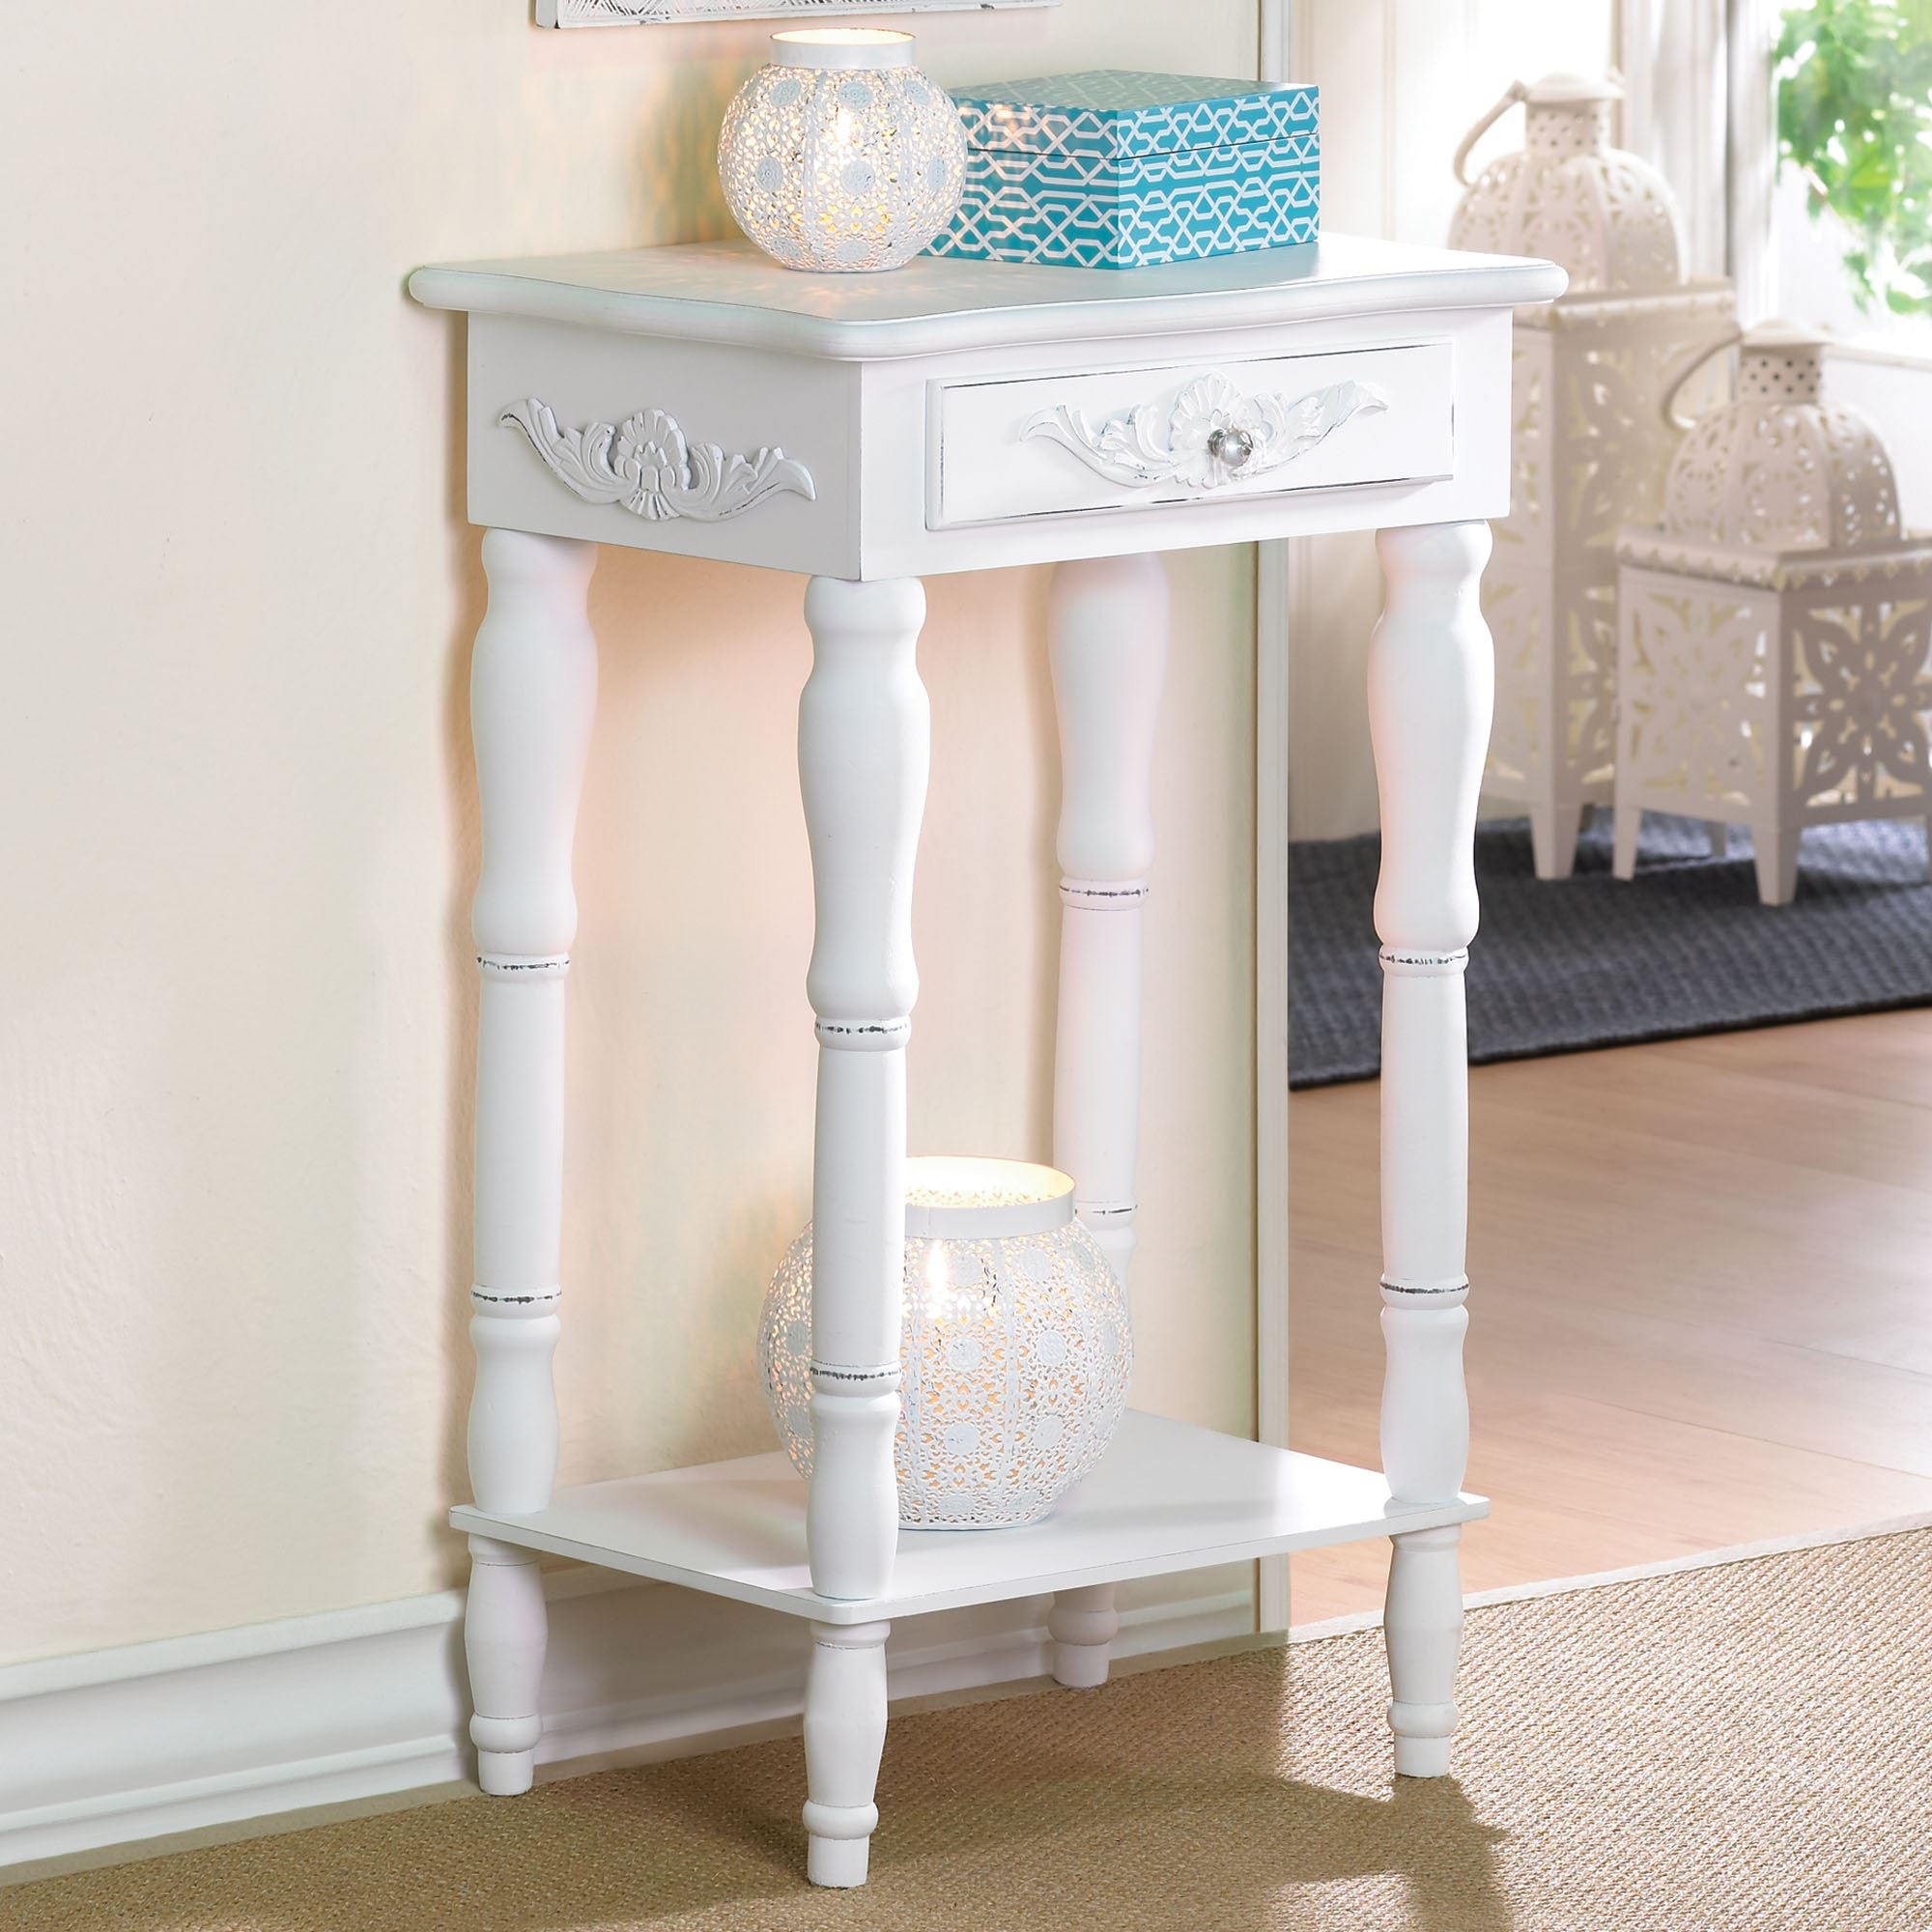 cosenza antique white accent table with drawer tall tables living room touch zoom moon chair target outdoor furniture cushions ashley bedroom rattan side industrial farmhouse